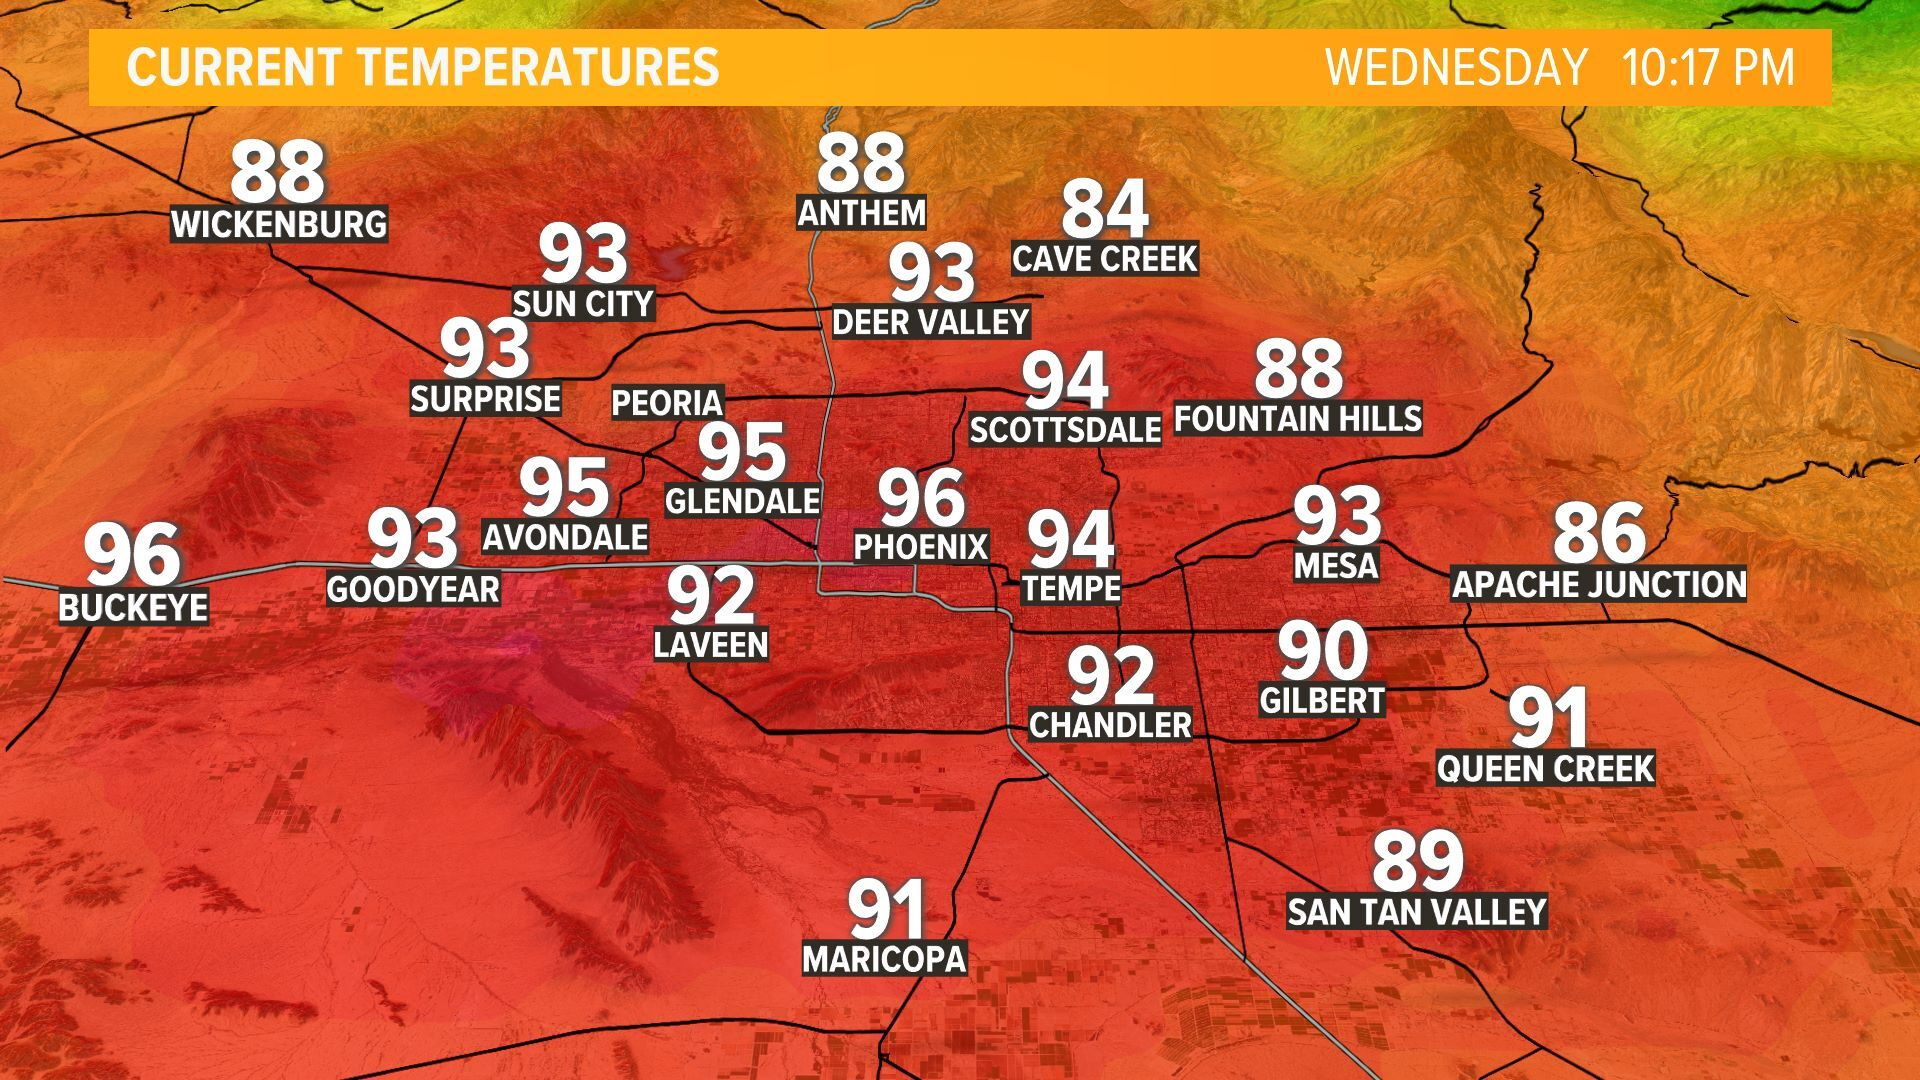 Current Valley Temperatures Courtesy 12 NEWS